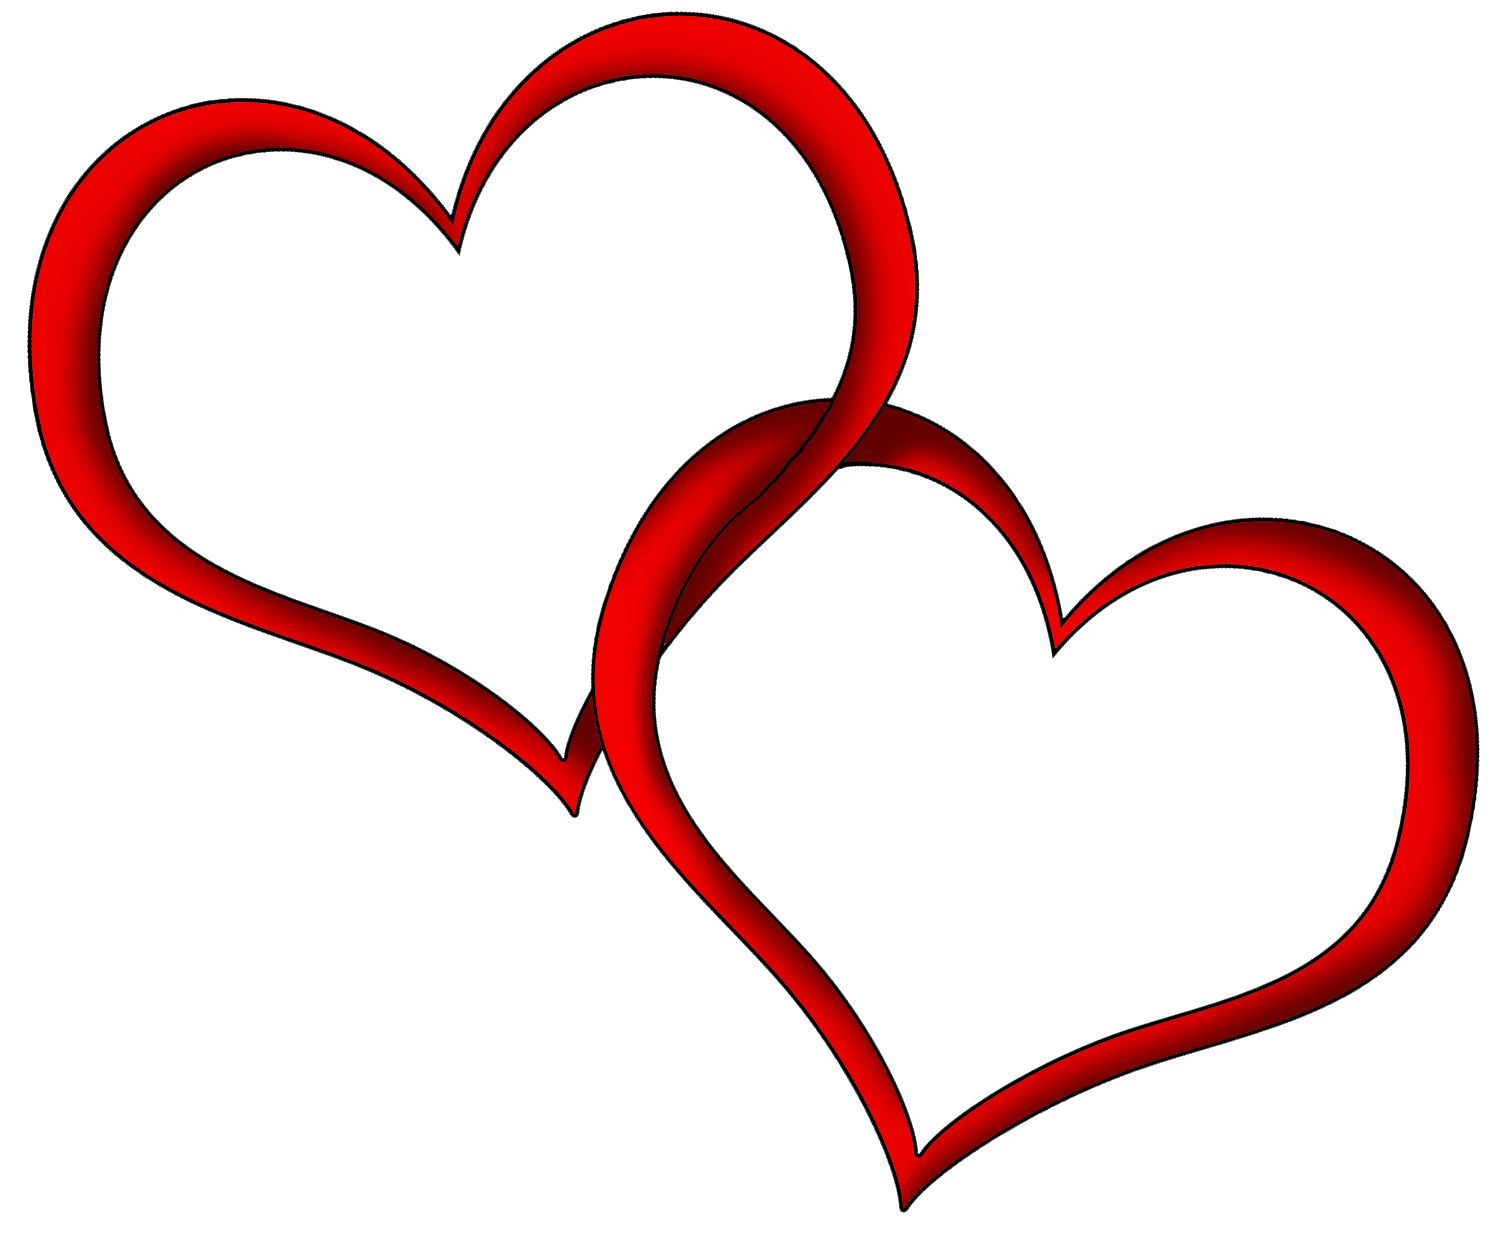 heart png clip art - Heart HD